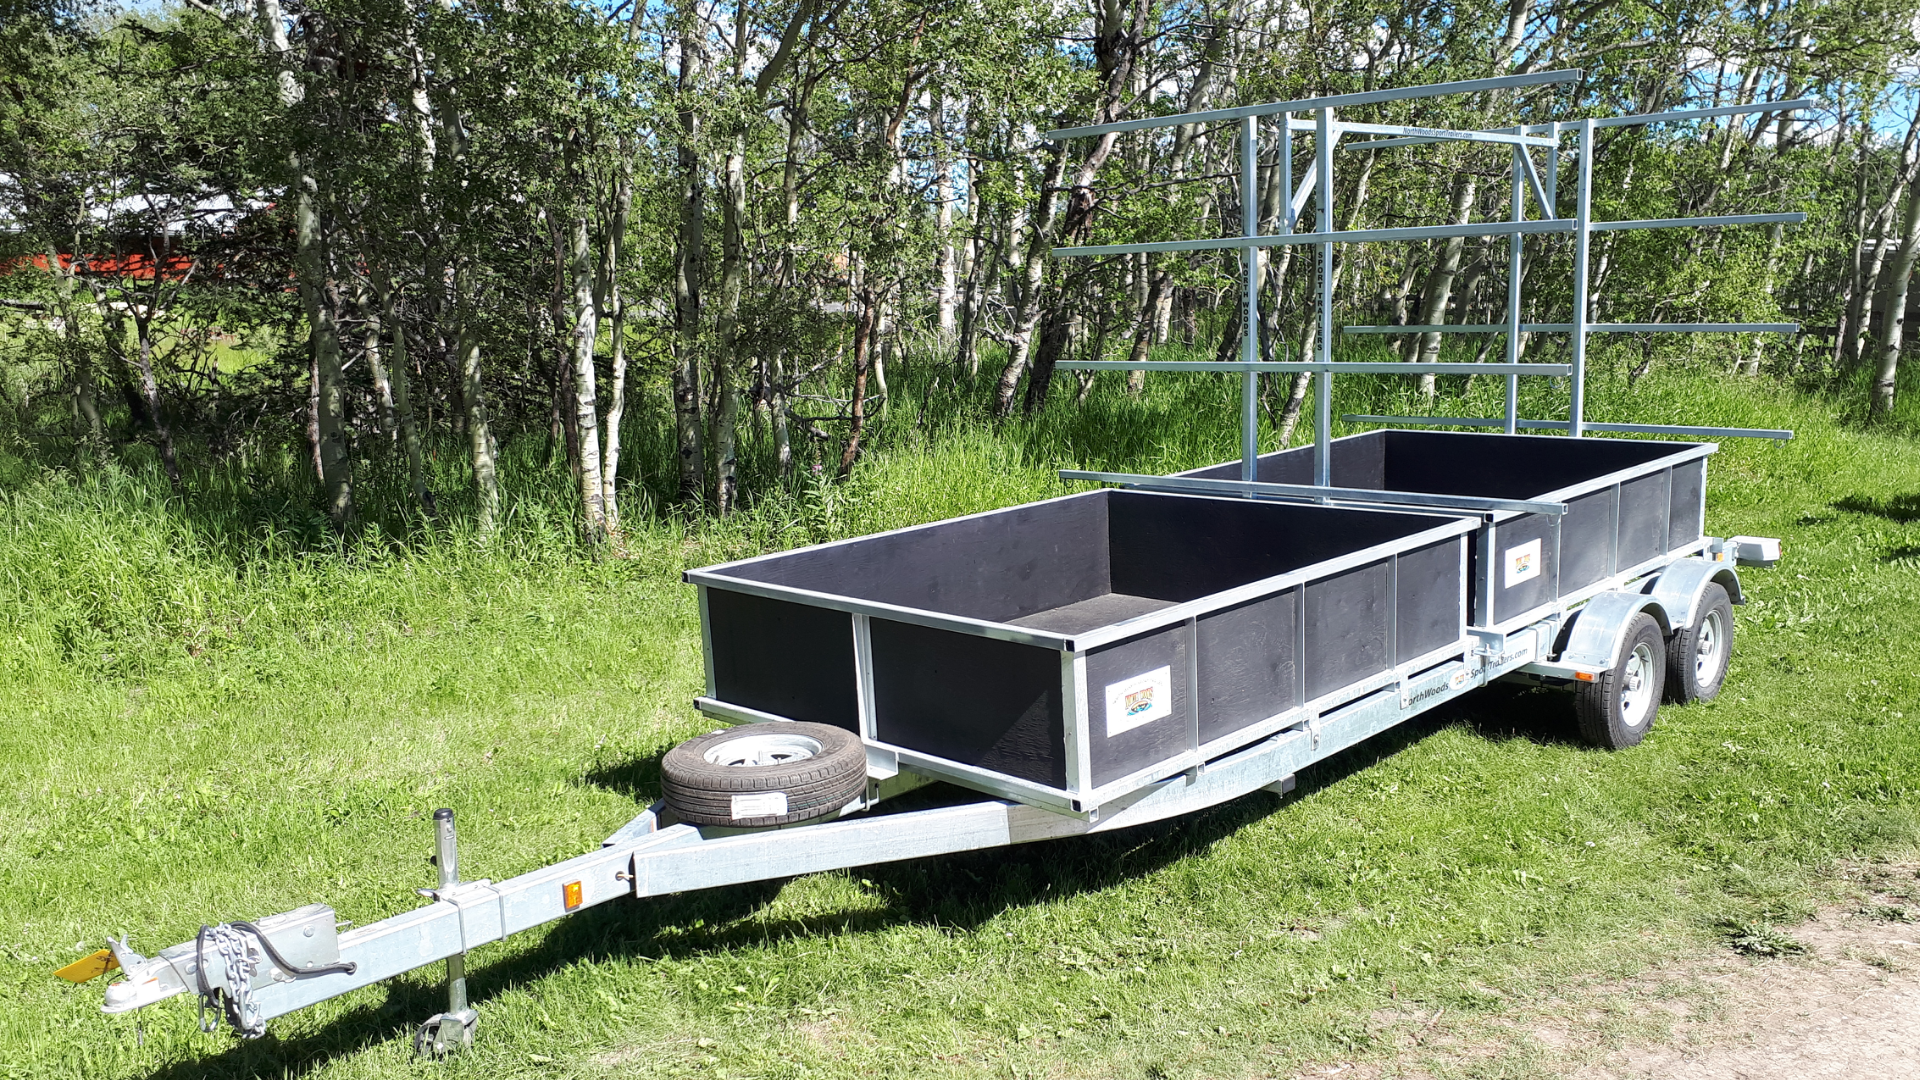 Transport, Storage & Launching: 6-8 place Canoe/12-16 Kayak Trailer by North Woods Sport Trailers - Image 4031